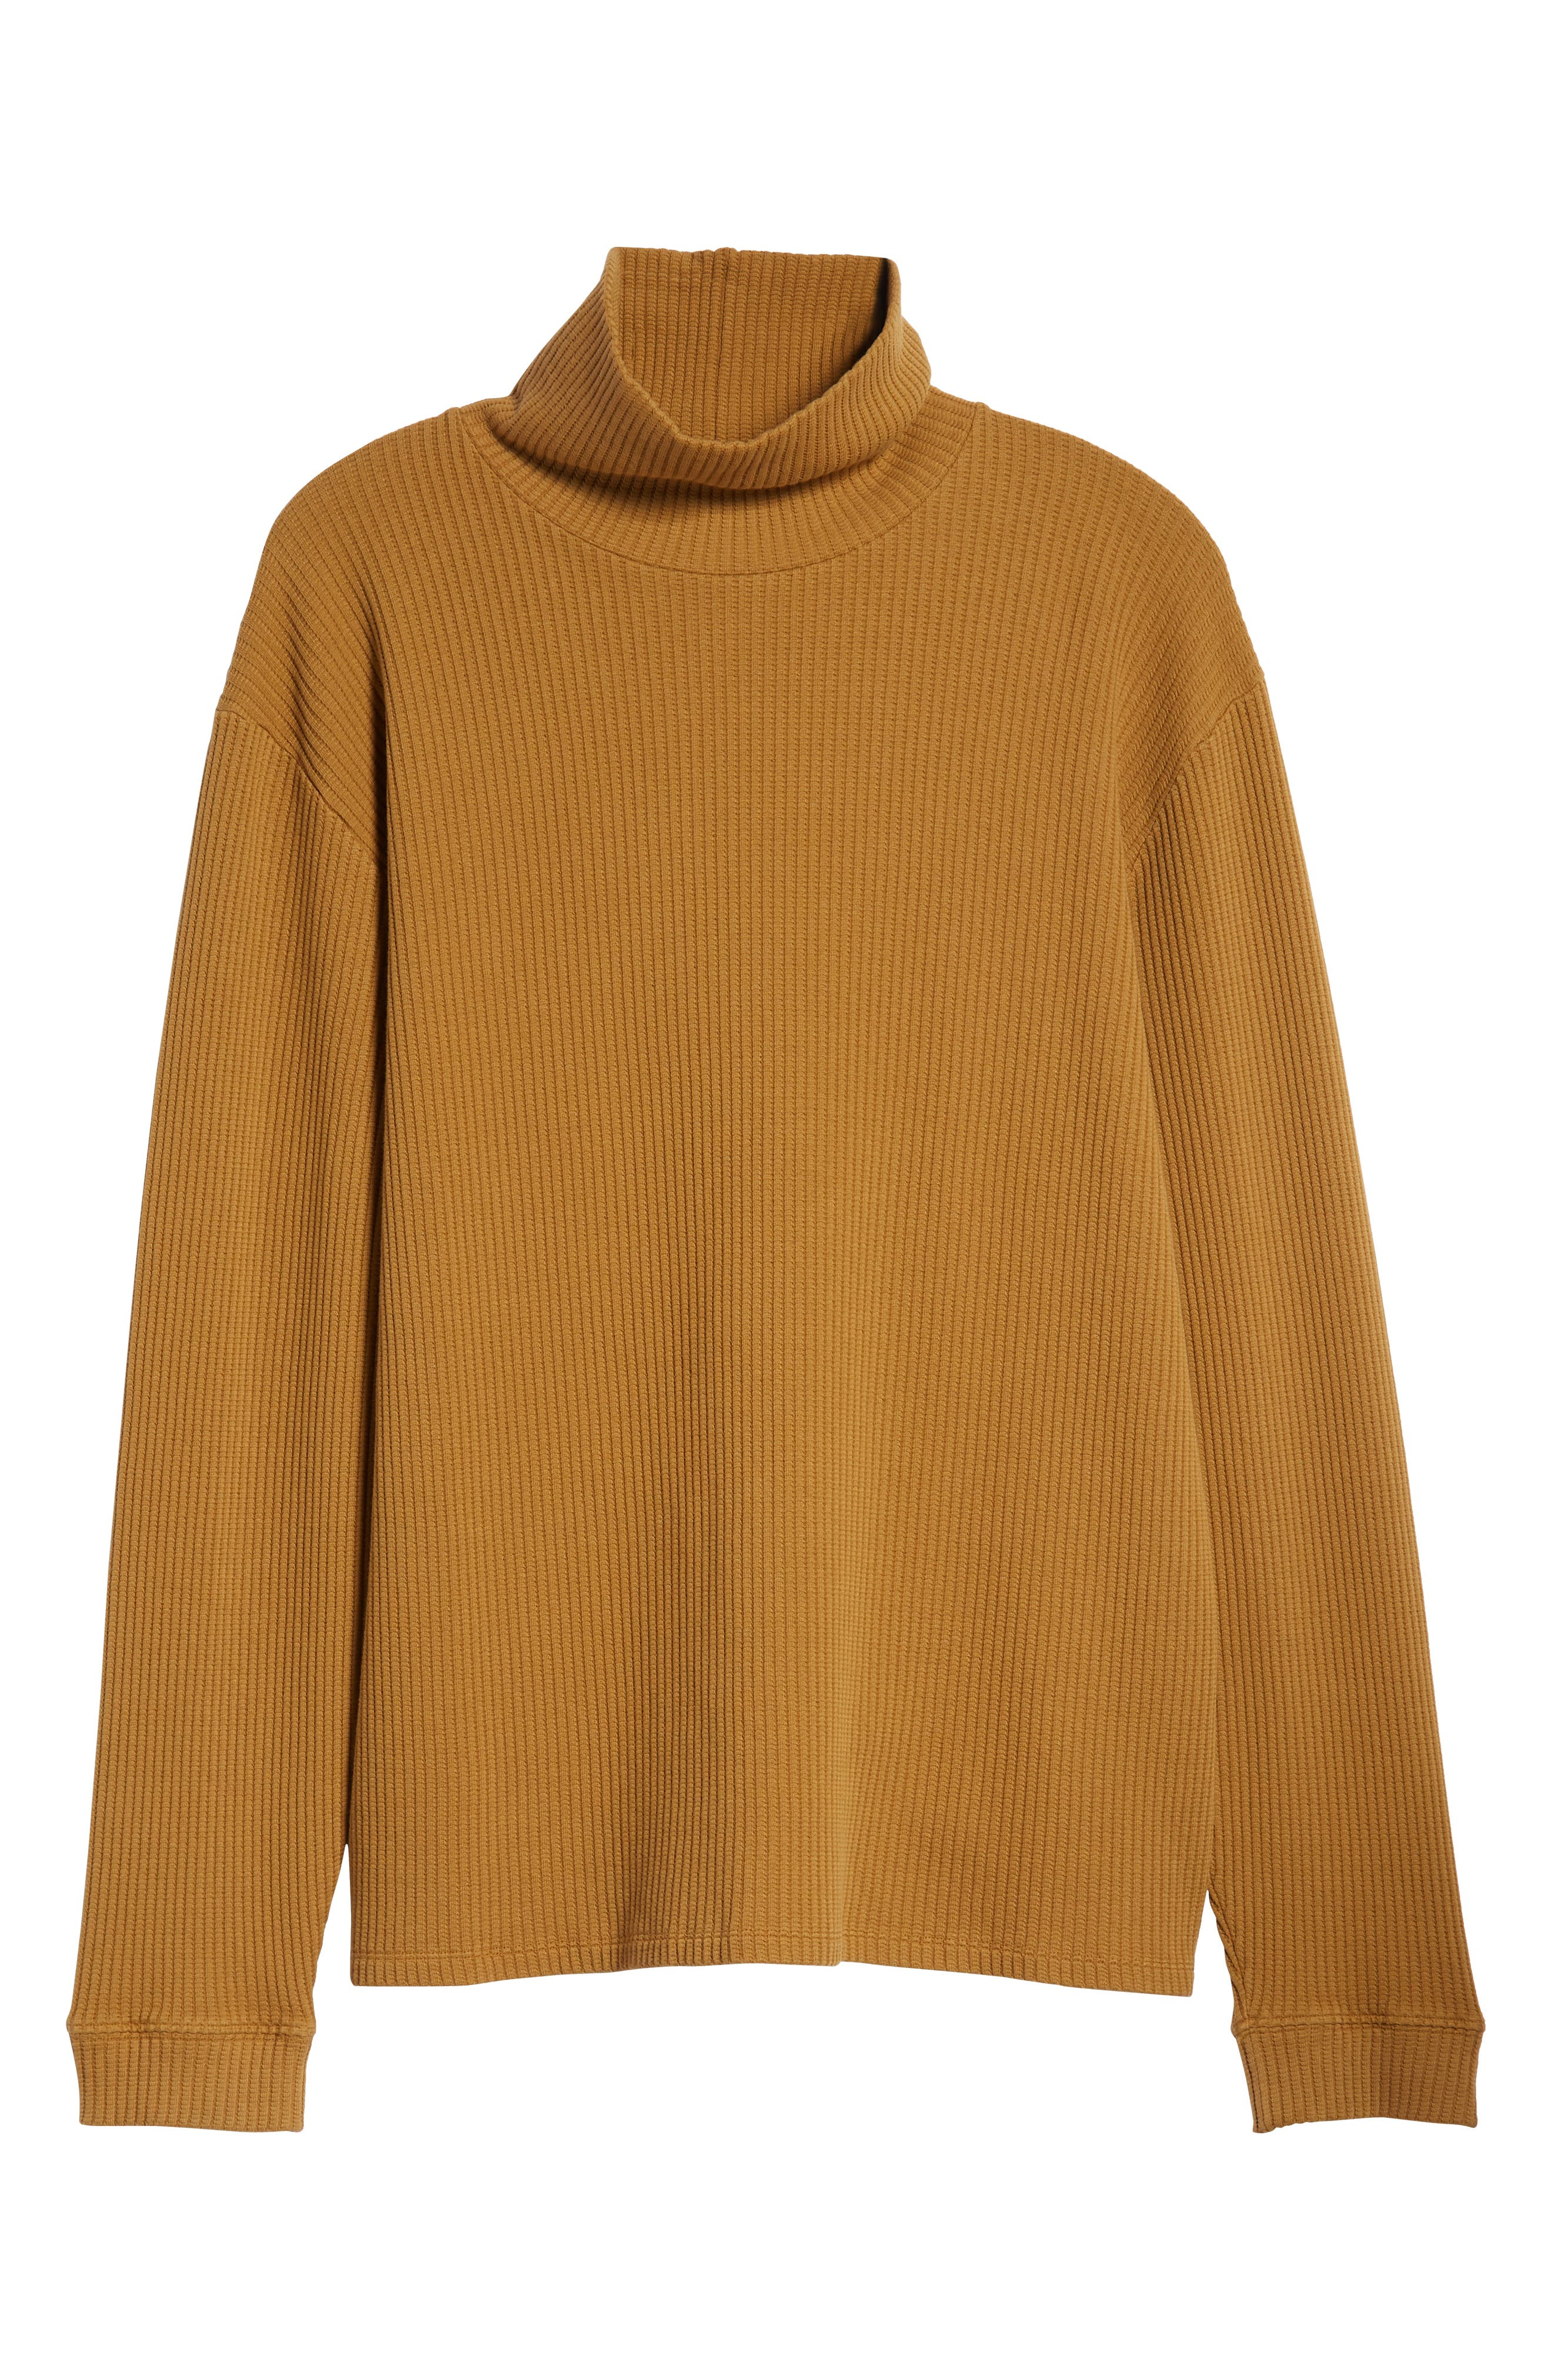 Henrik Turtleneck Sweater,                             Alternate thumbnail 6, color,                             BURNT KHAKI